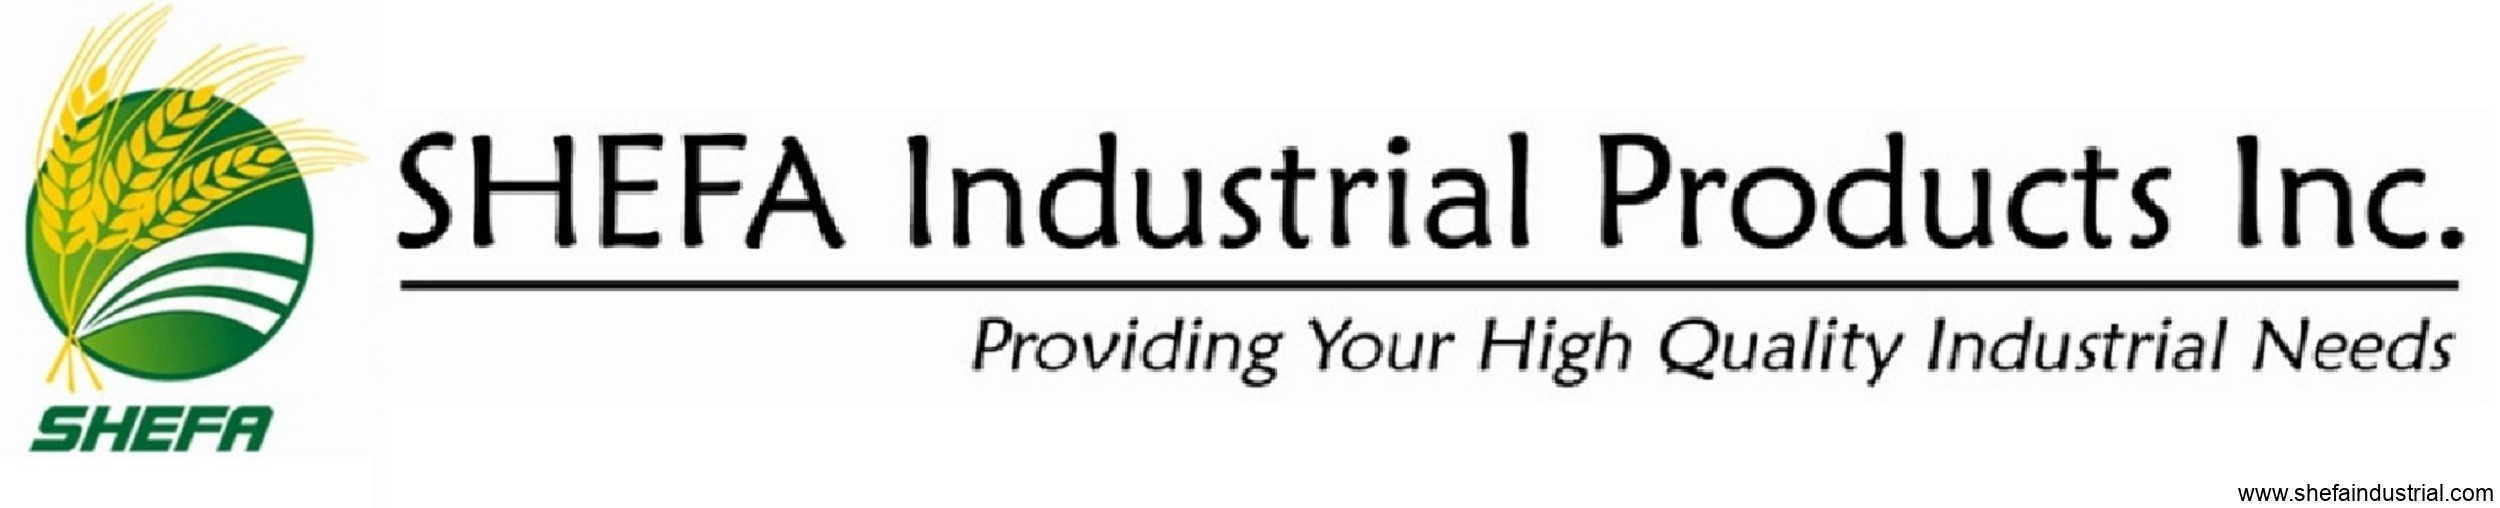 Shefa Industrial Products Inc.